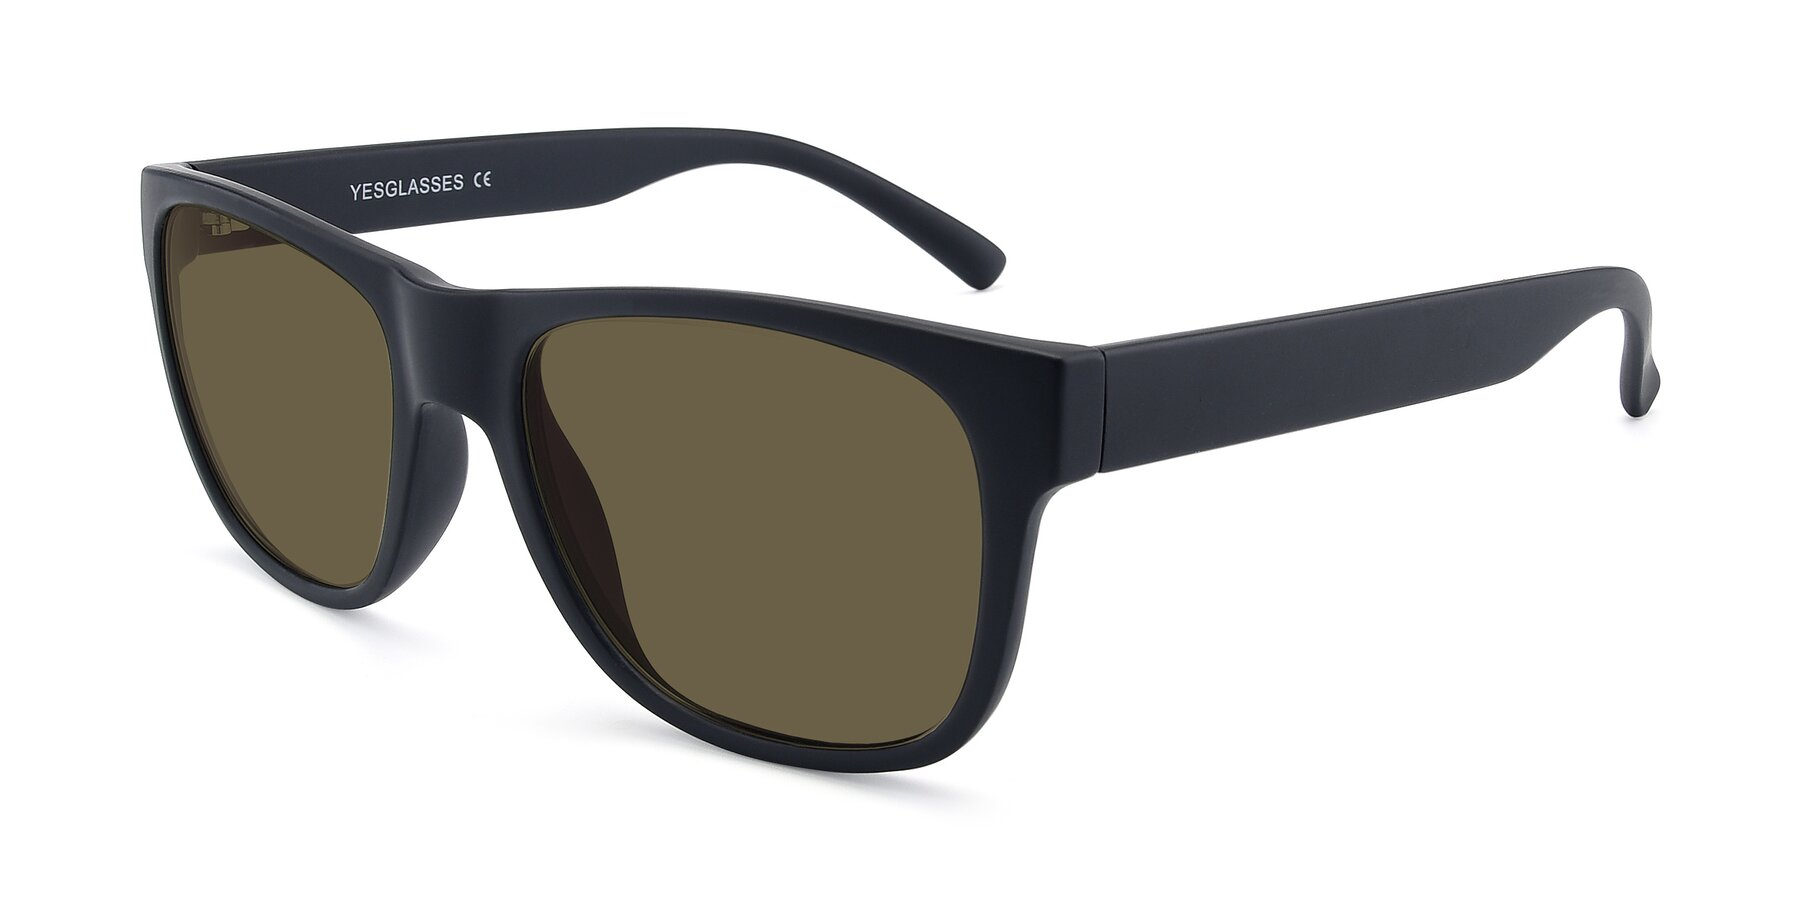 Angle of SSR213 in Matte Black with Brown Polarized Lenses